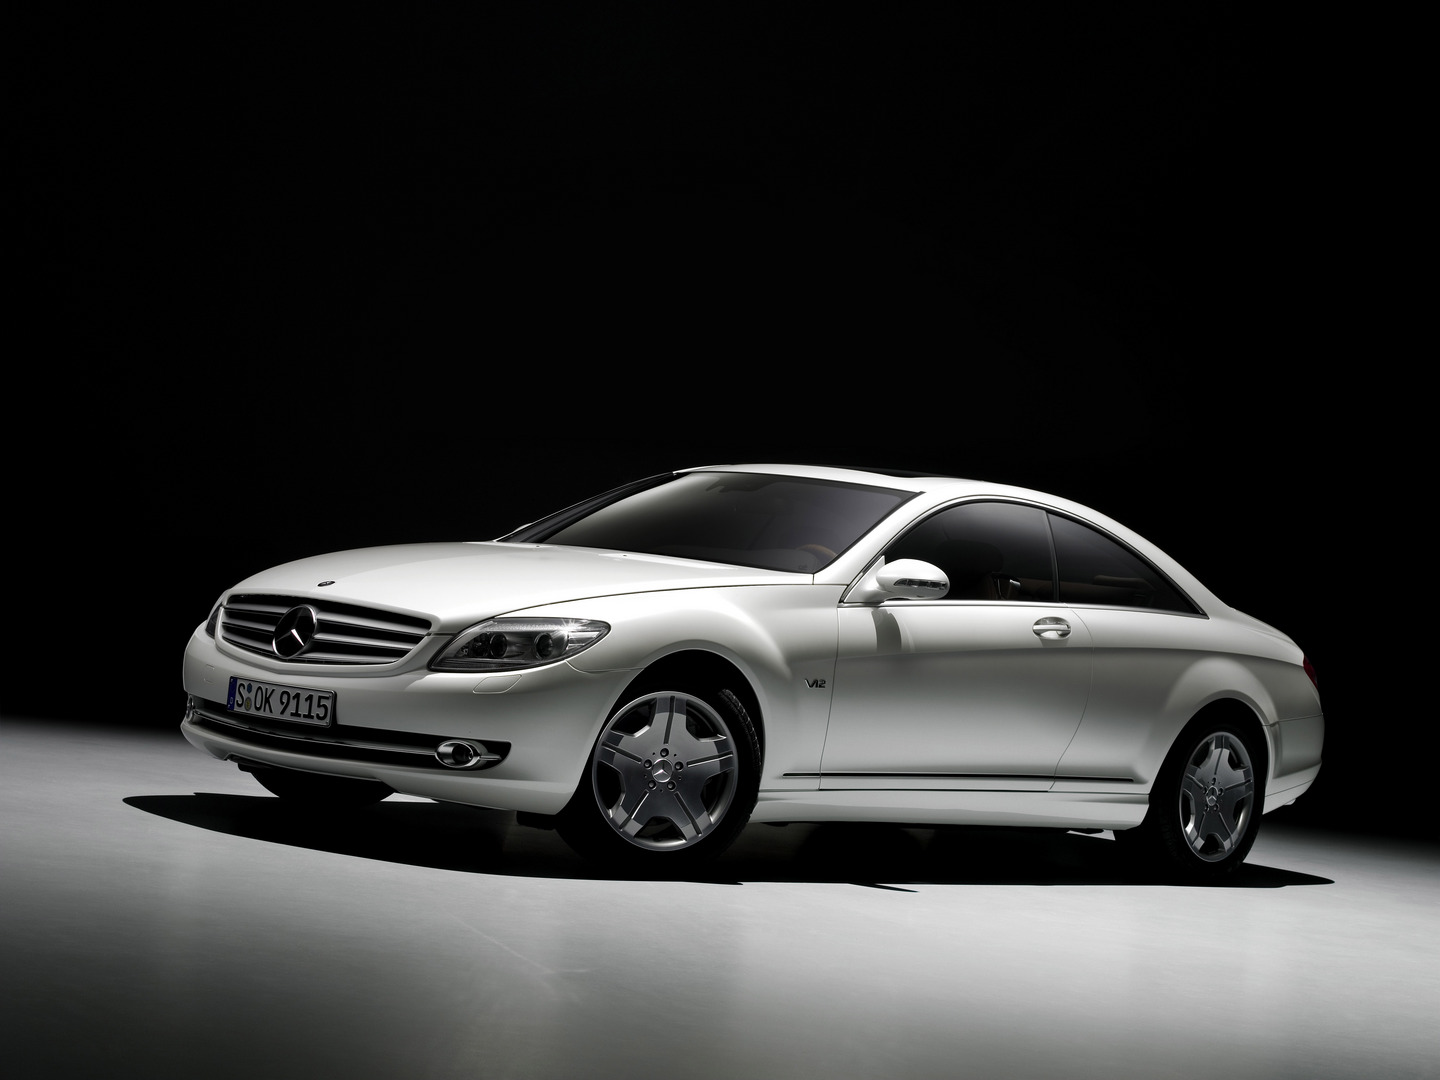 Mercedes Cl Auto Wallpapers Groenlicht Be